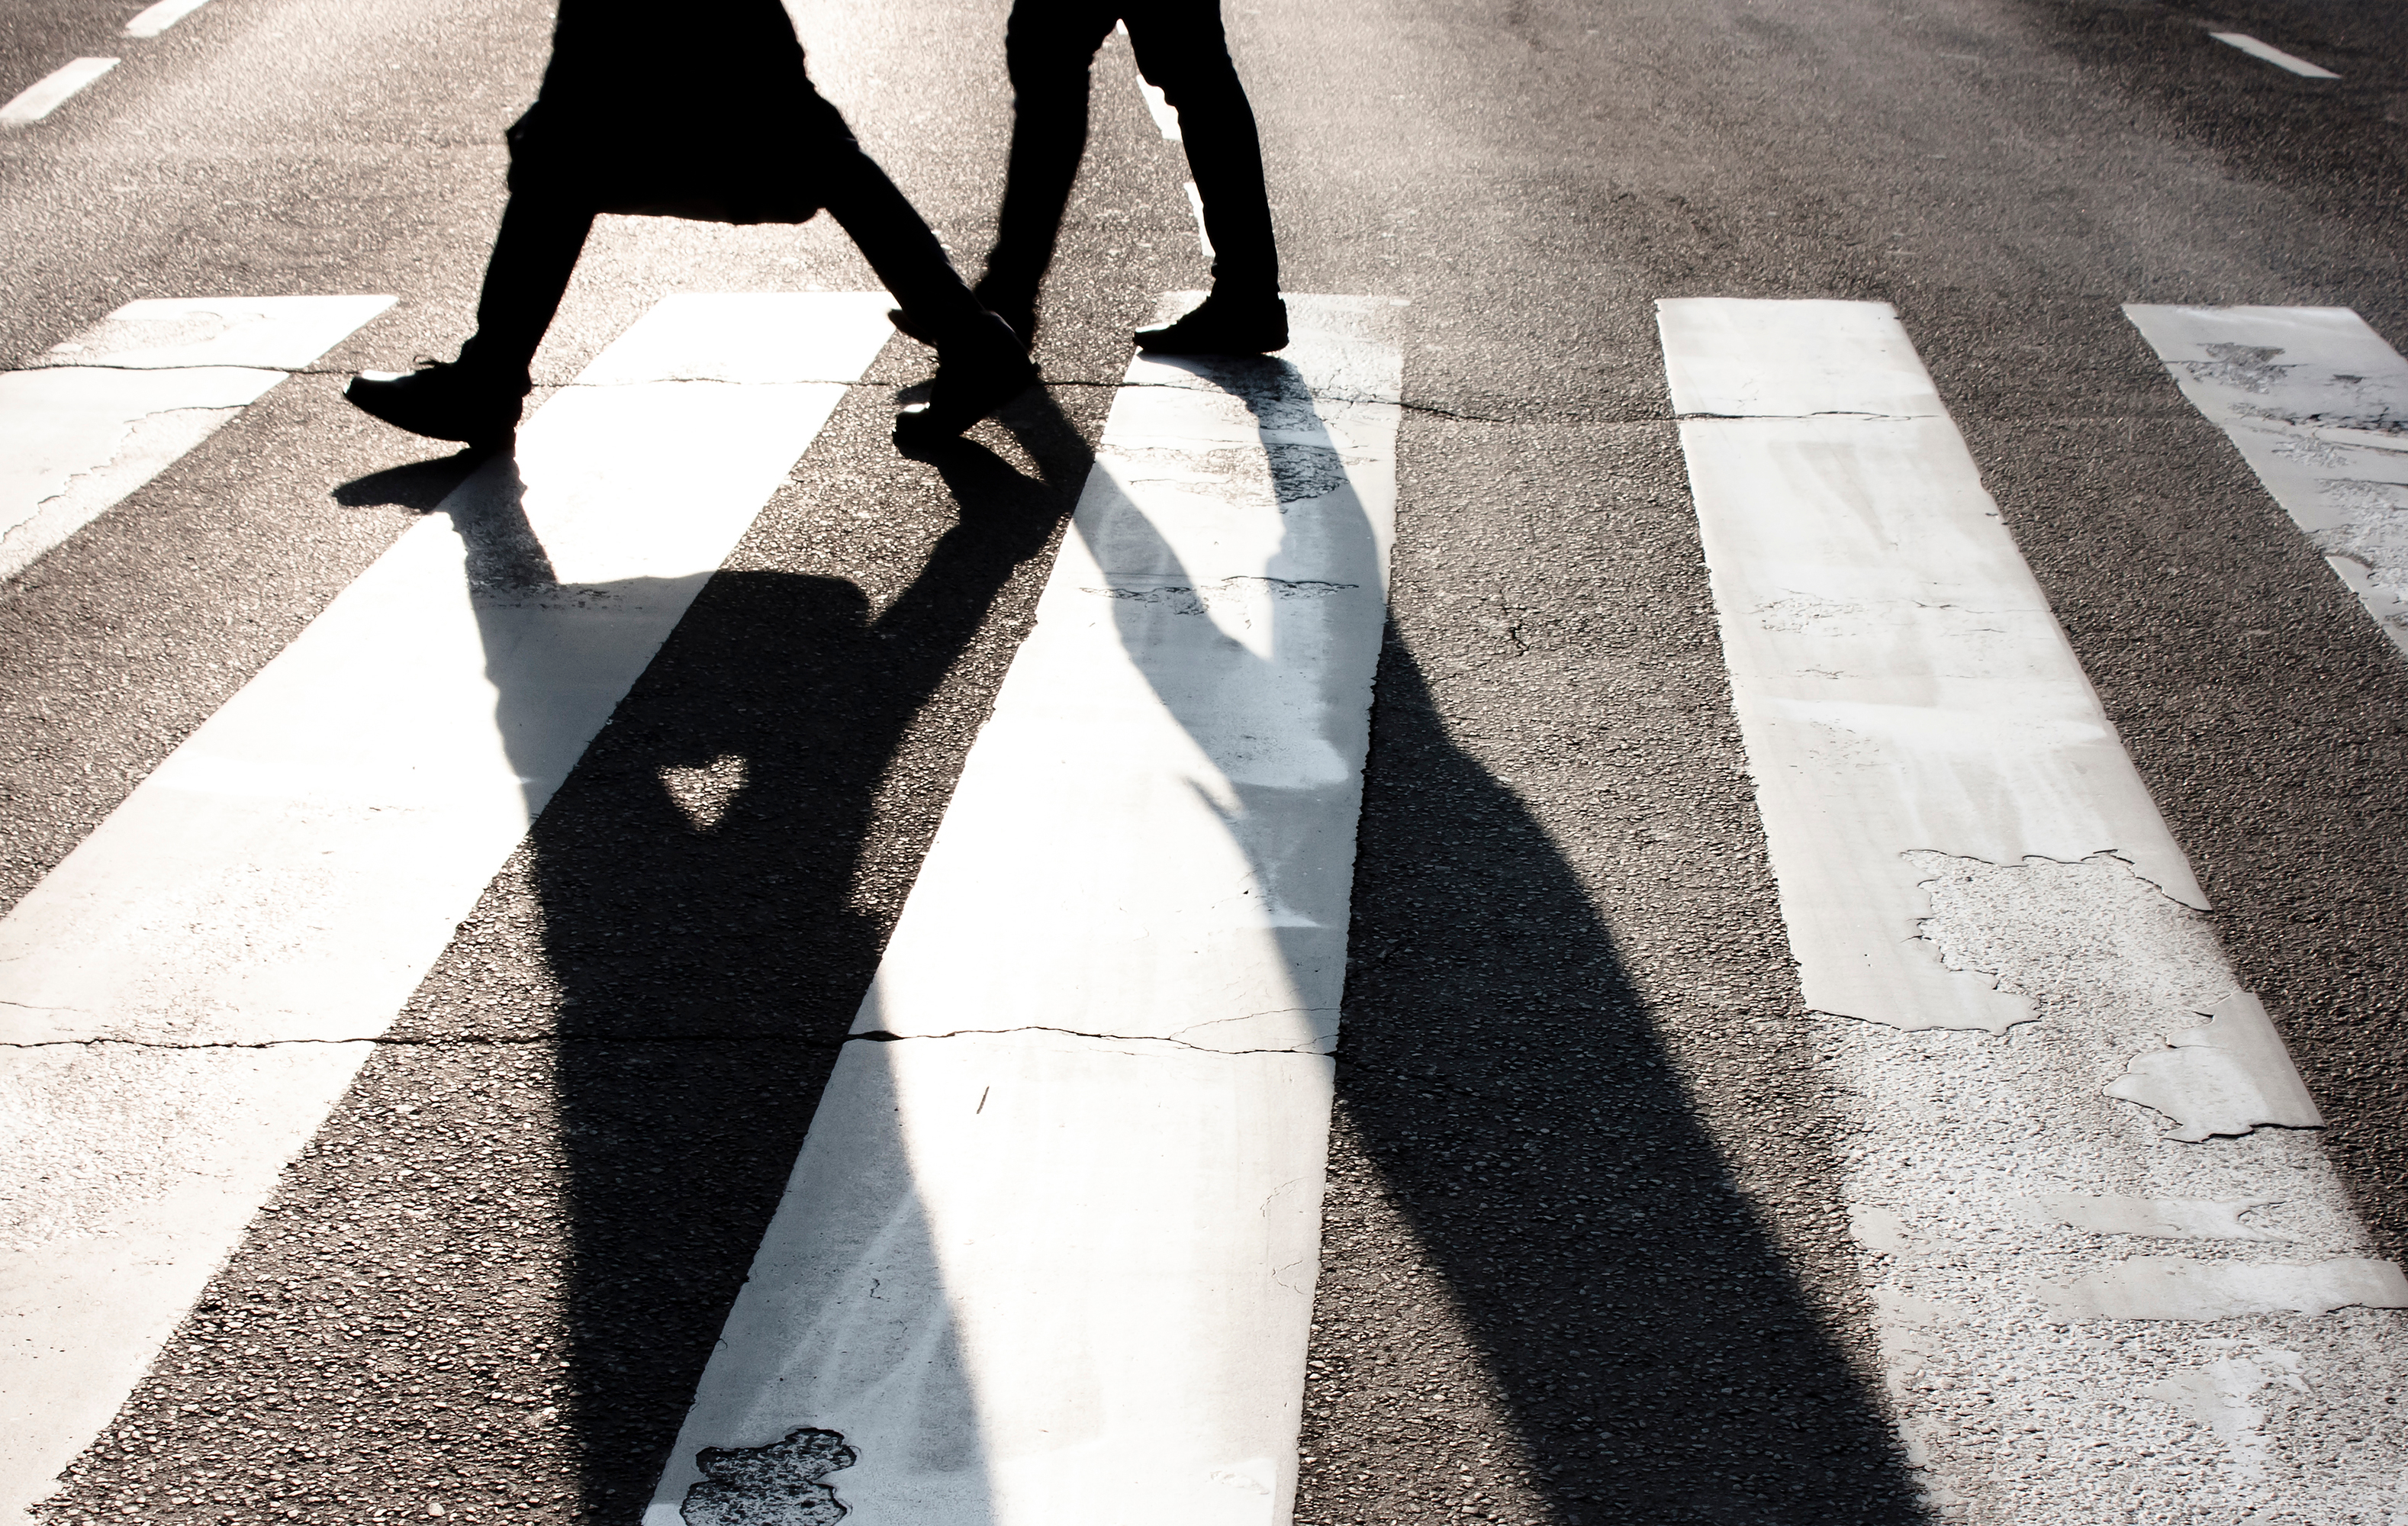 The legs of two pedestrians and their shadows are seen traversing a zebra crosswalk.